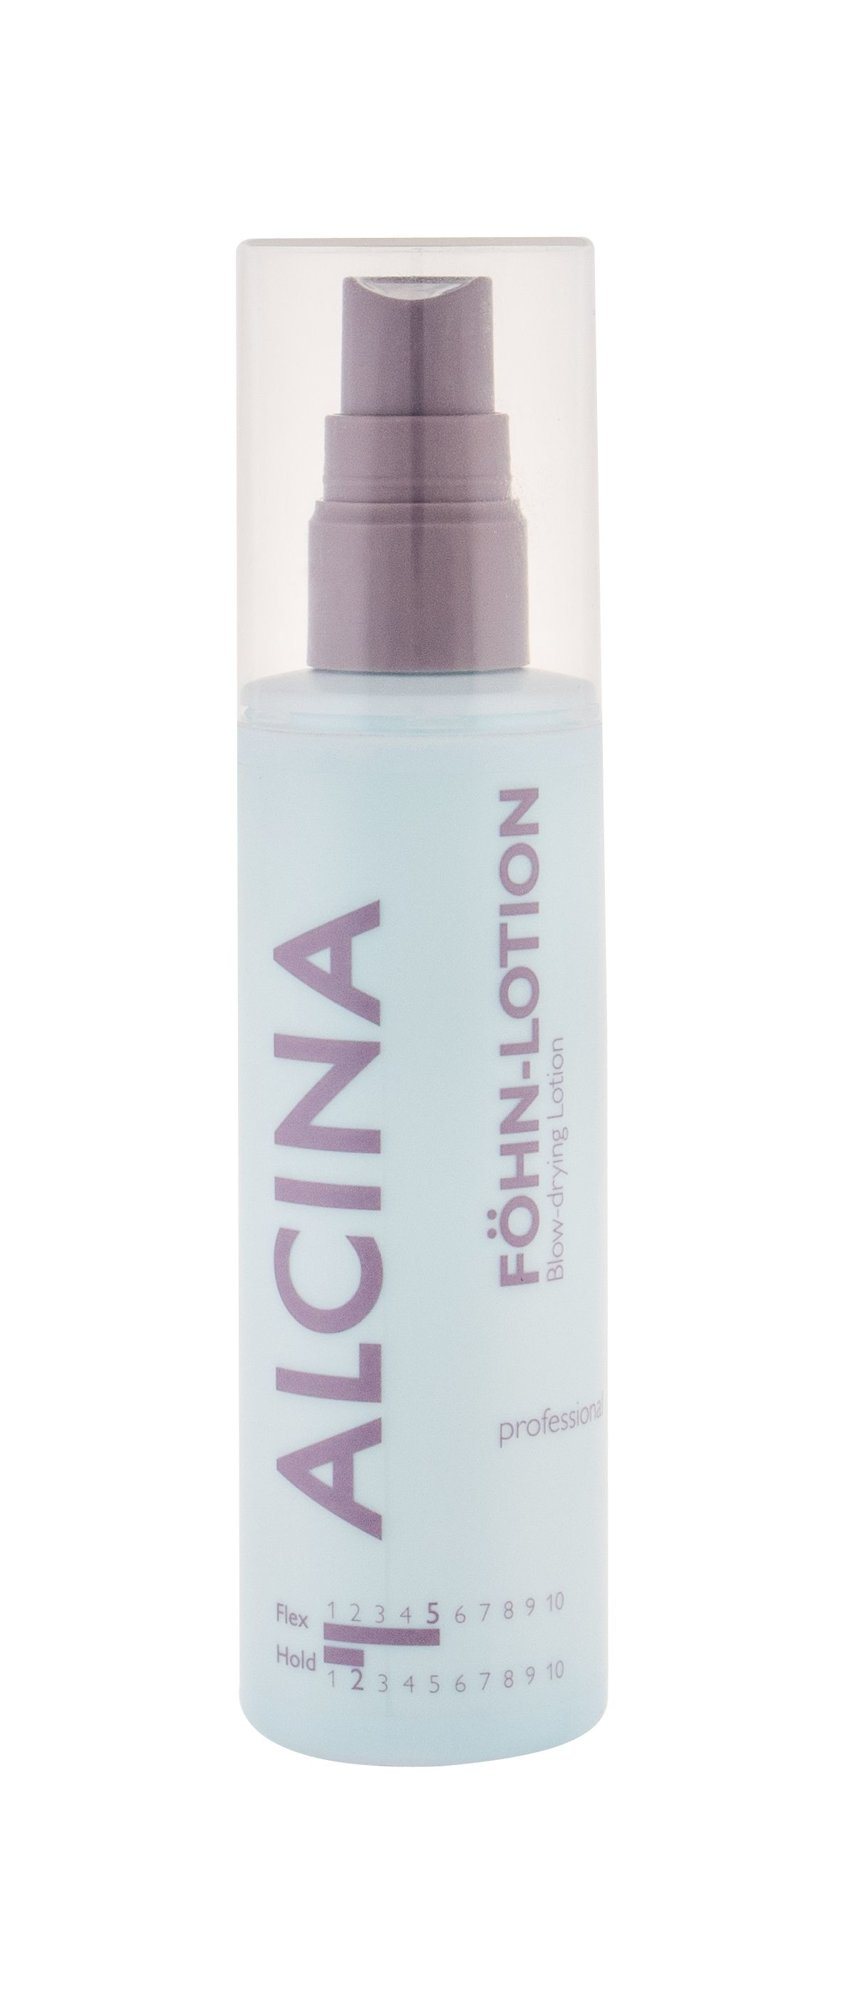 ALCINA Professional For Heat Hairstyling 125ml  Blow-Drying Lotion